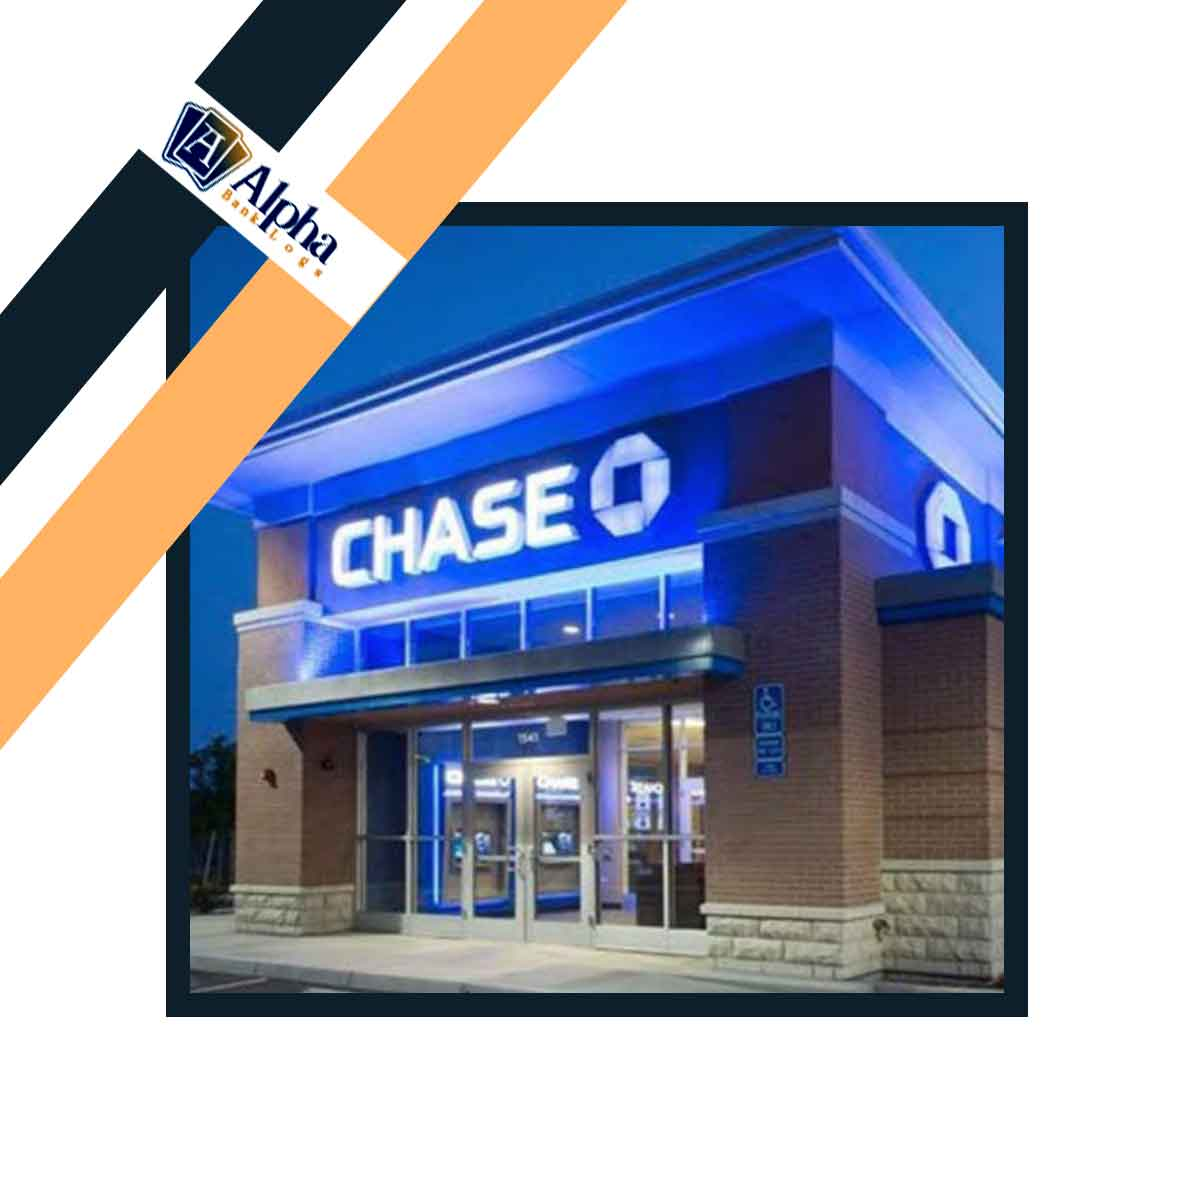 Bank drop Chase self registered email access, full info, IP inf